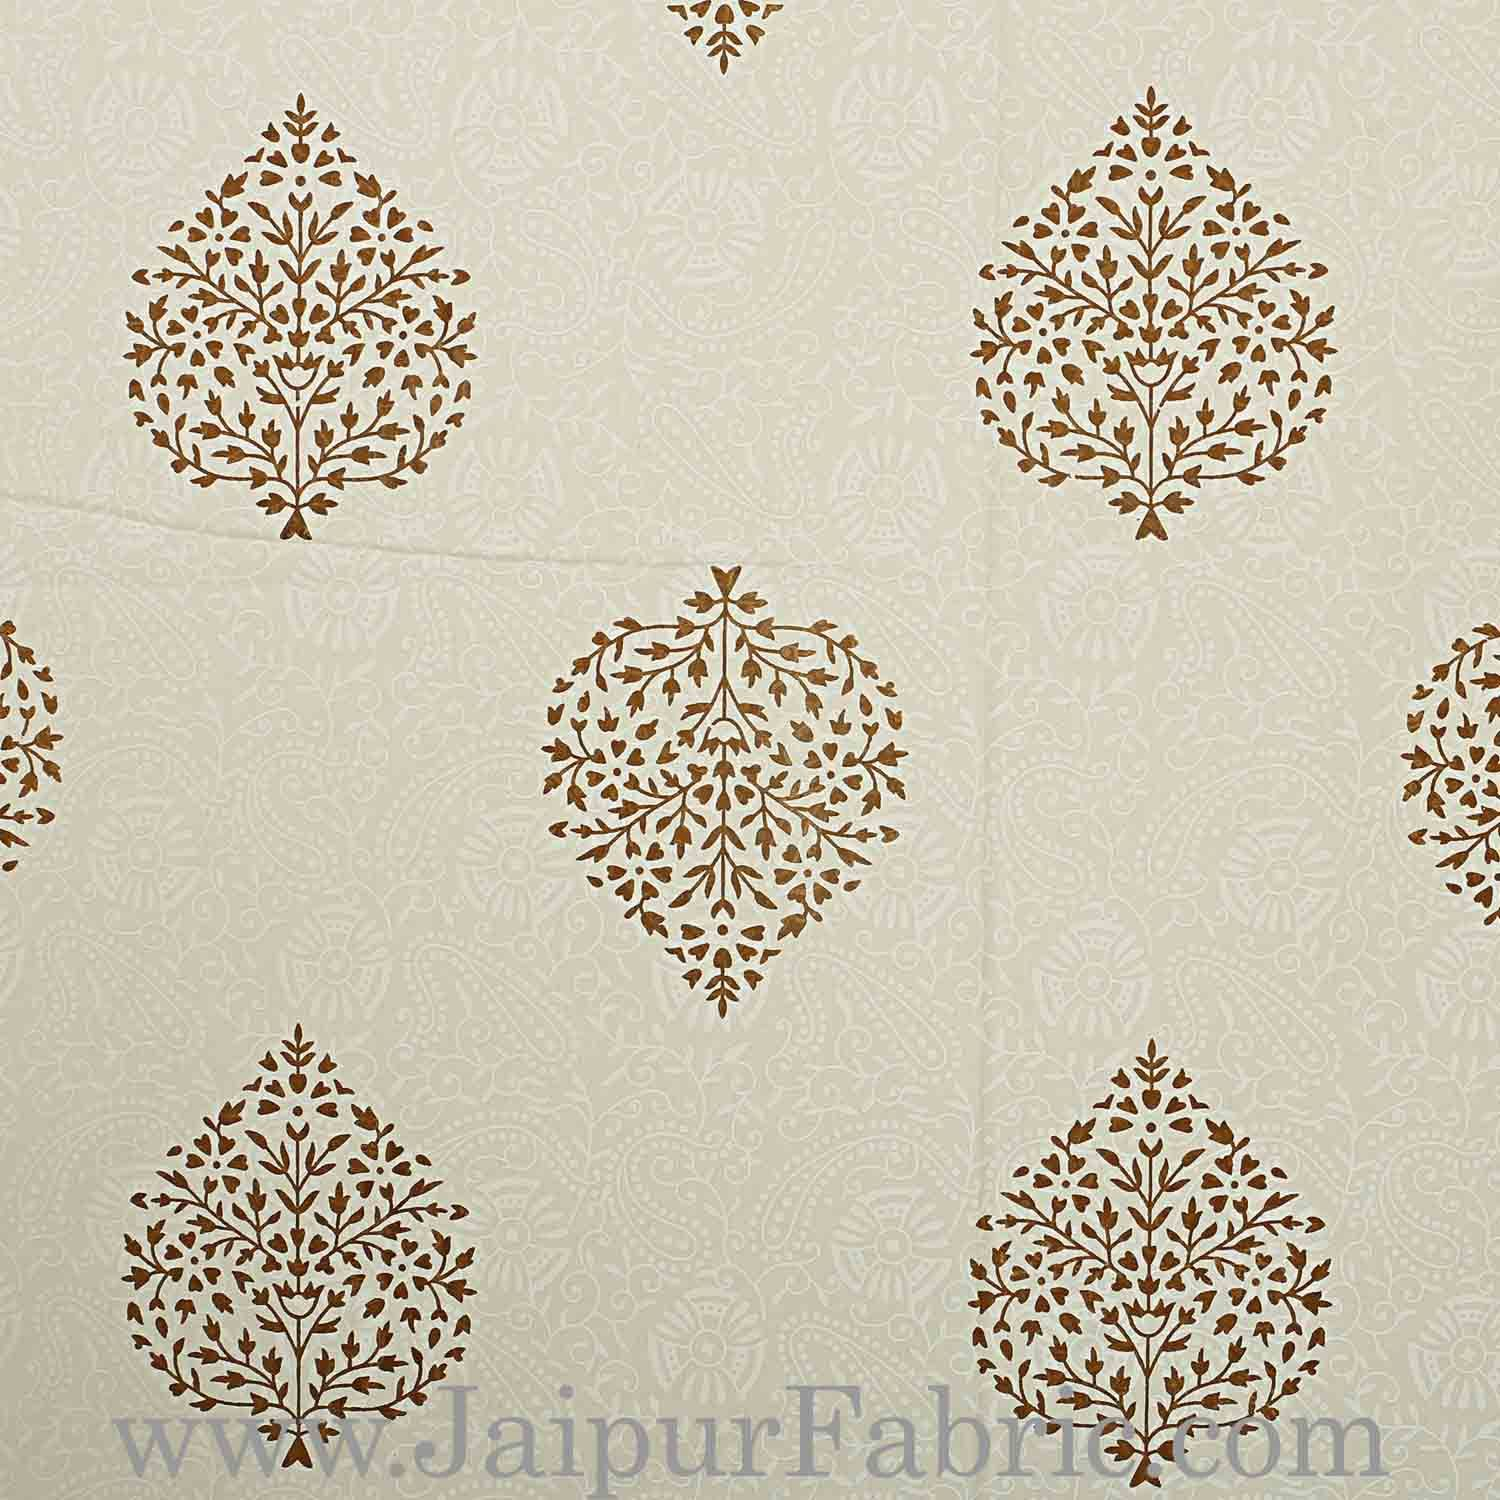 Double bedsheet Small  Brown Tree kadi Print Smooth  Cotton Screen Print